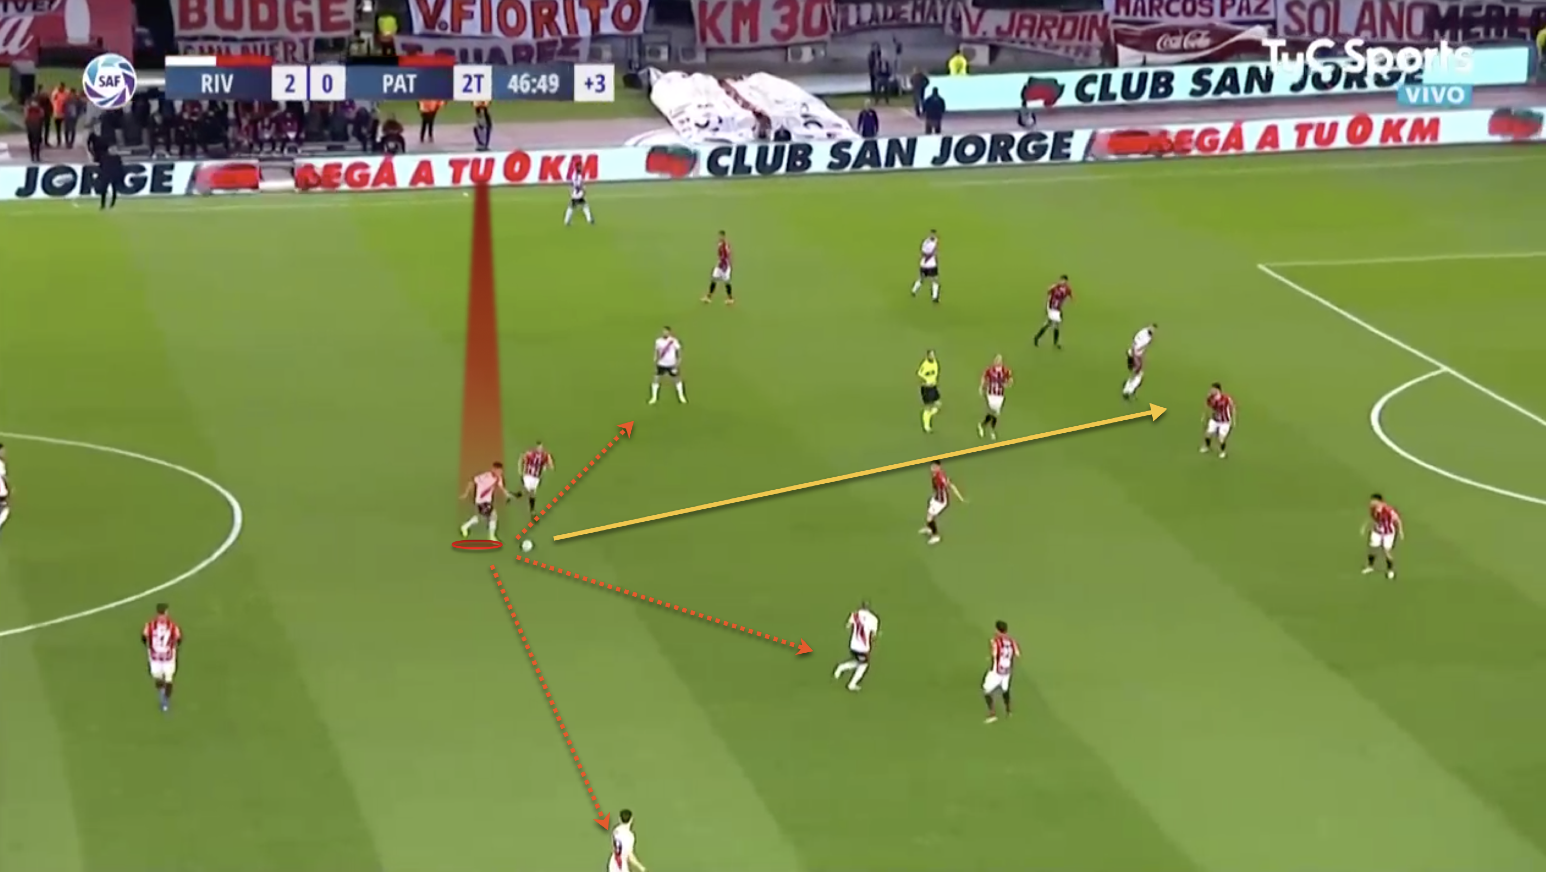 Exequiel Palacios 2019/20 - scout report - tactical analysis tactics